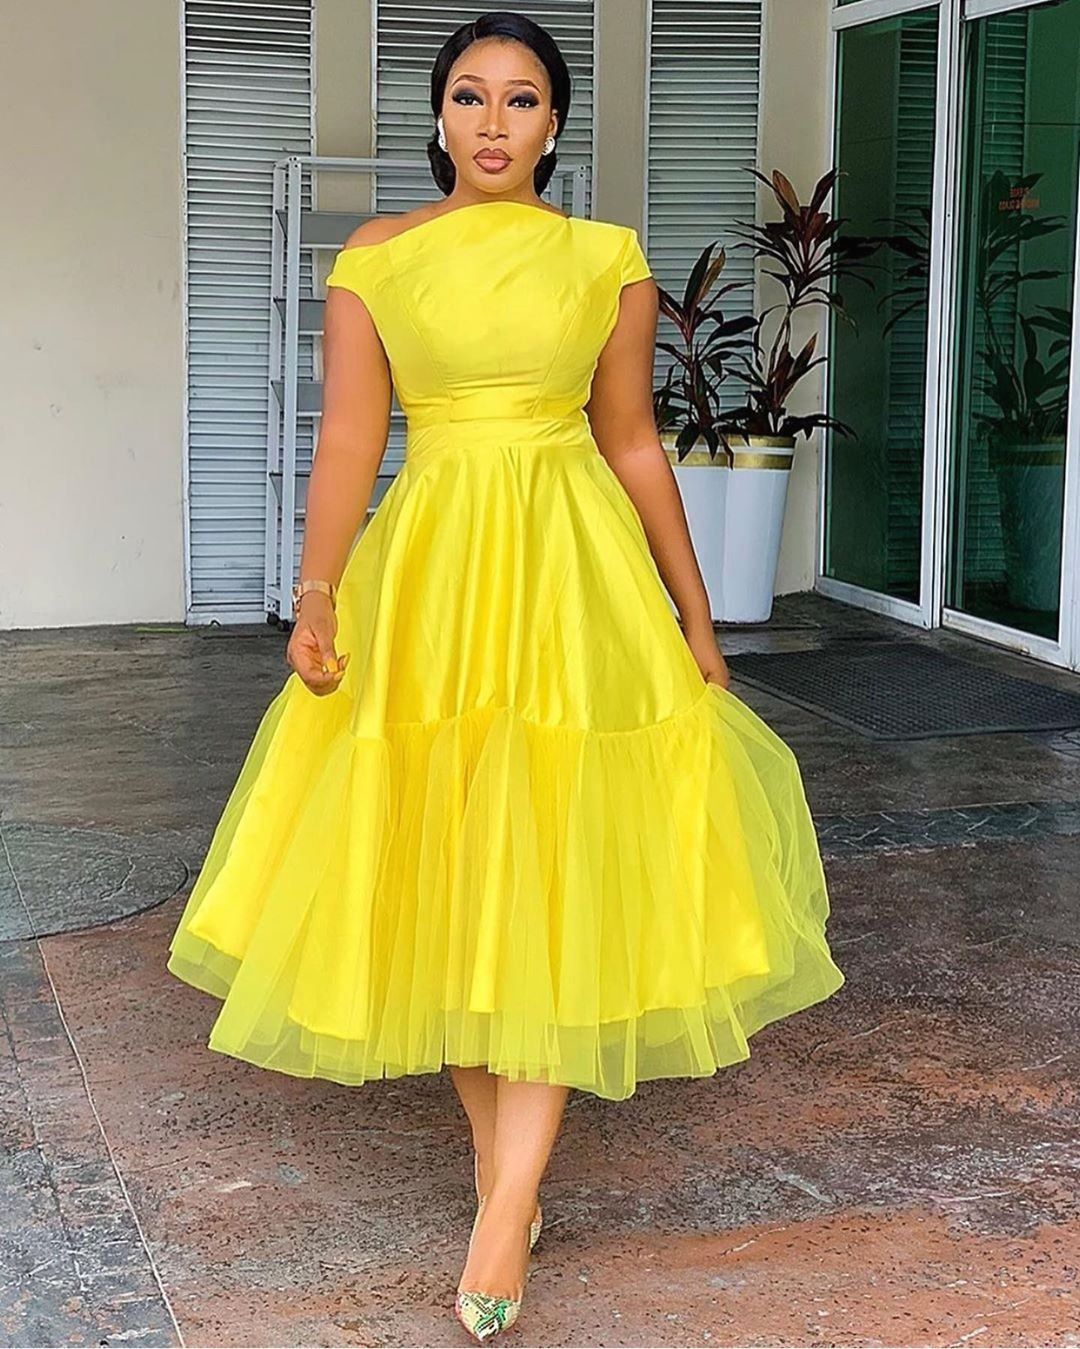 African Trendy Styles On Instagram Wedding Guest Style Inspiration Just Becau African Print Fashion Dresses African Fashion Dresses African Wear Dresses [ 1349 x 1080 Pixel ]